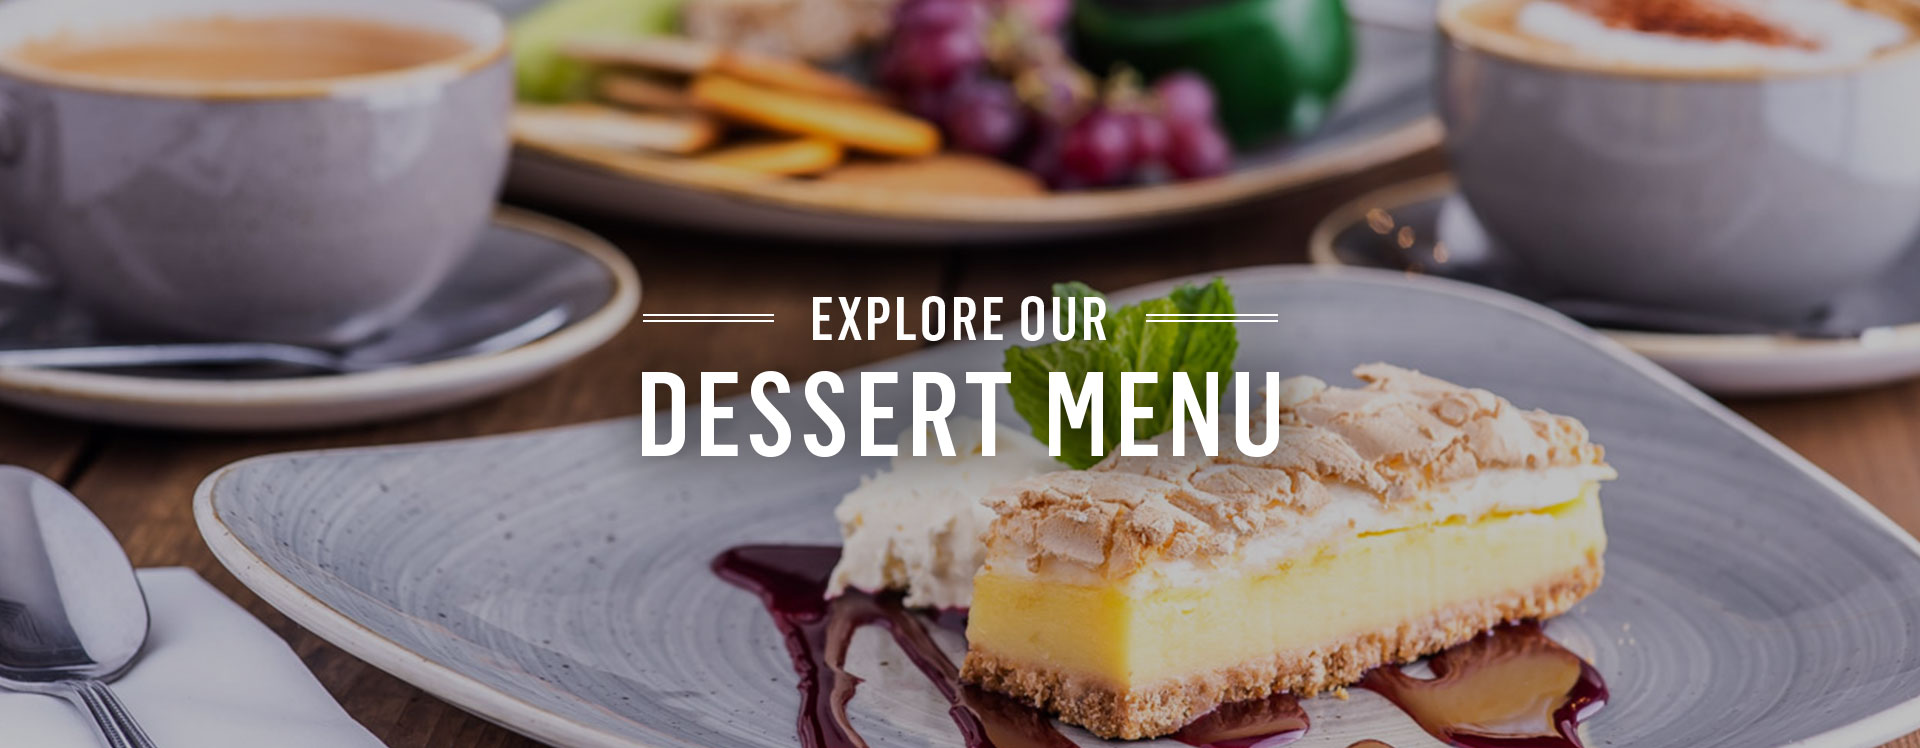 Dessert menu at The Kenilworth - Book a table